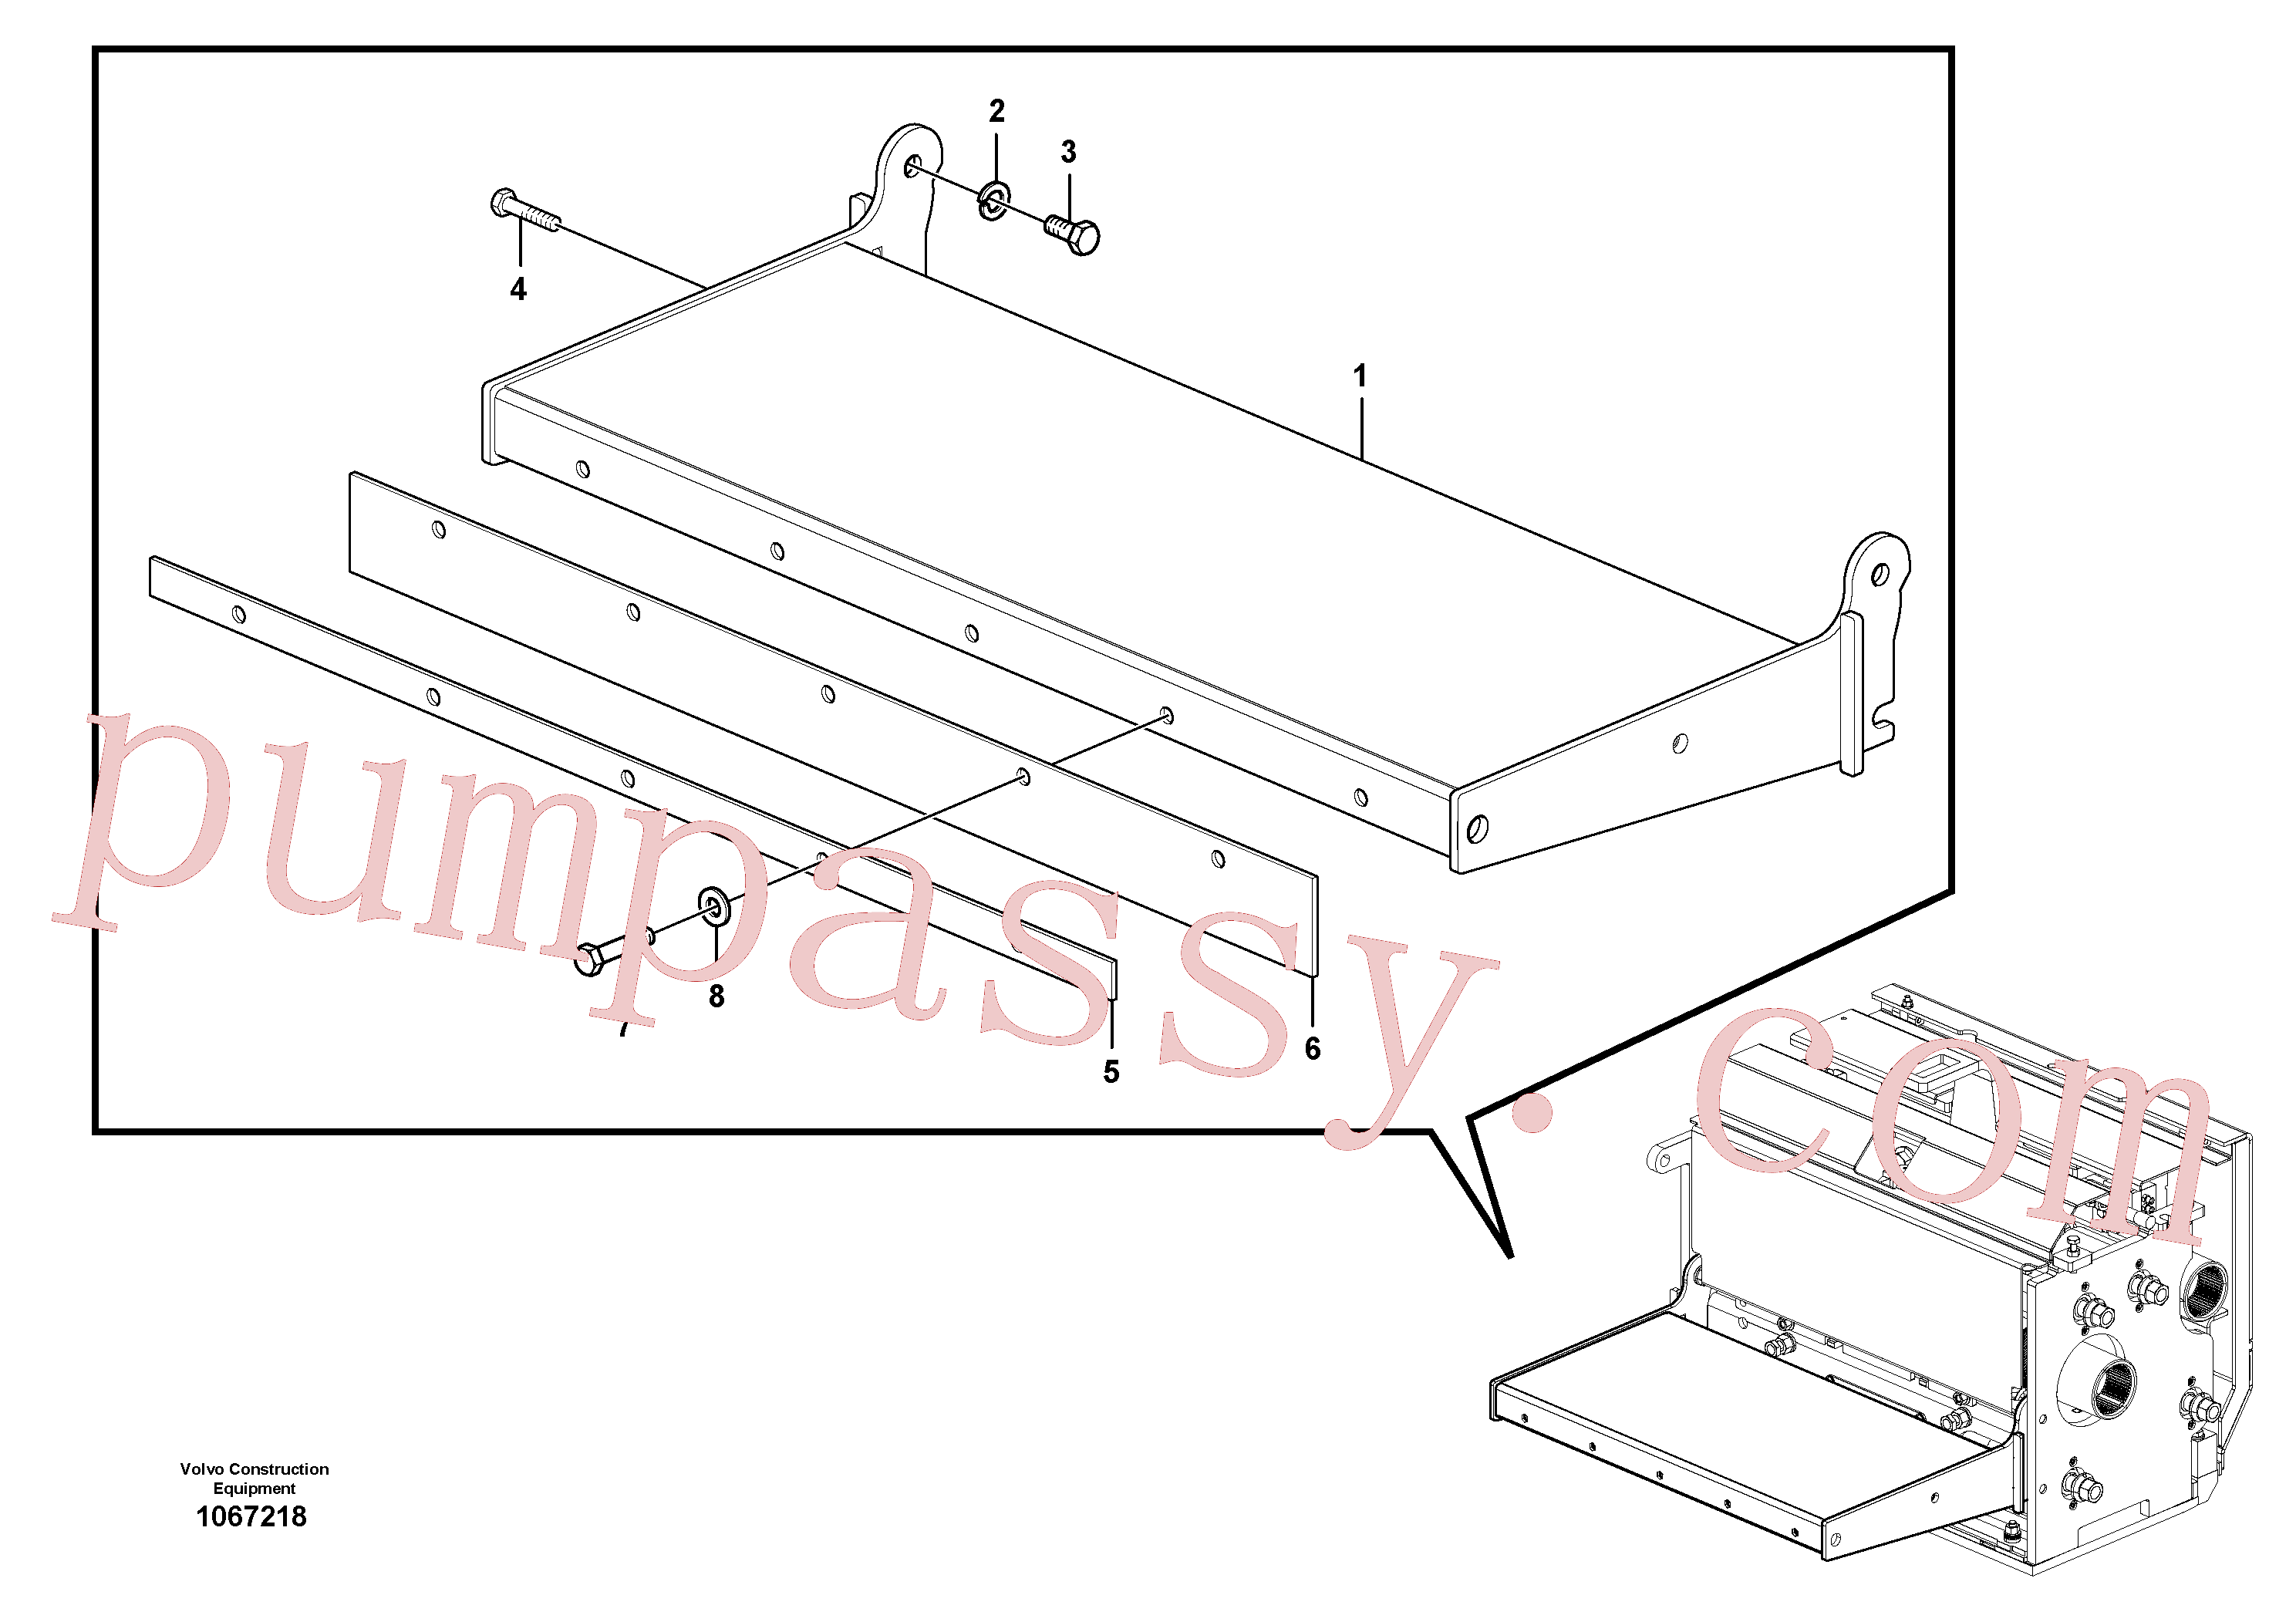 RM87969887 for Volvo Catwalk(1067218 assembly)